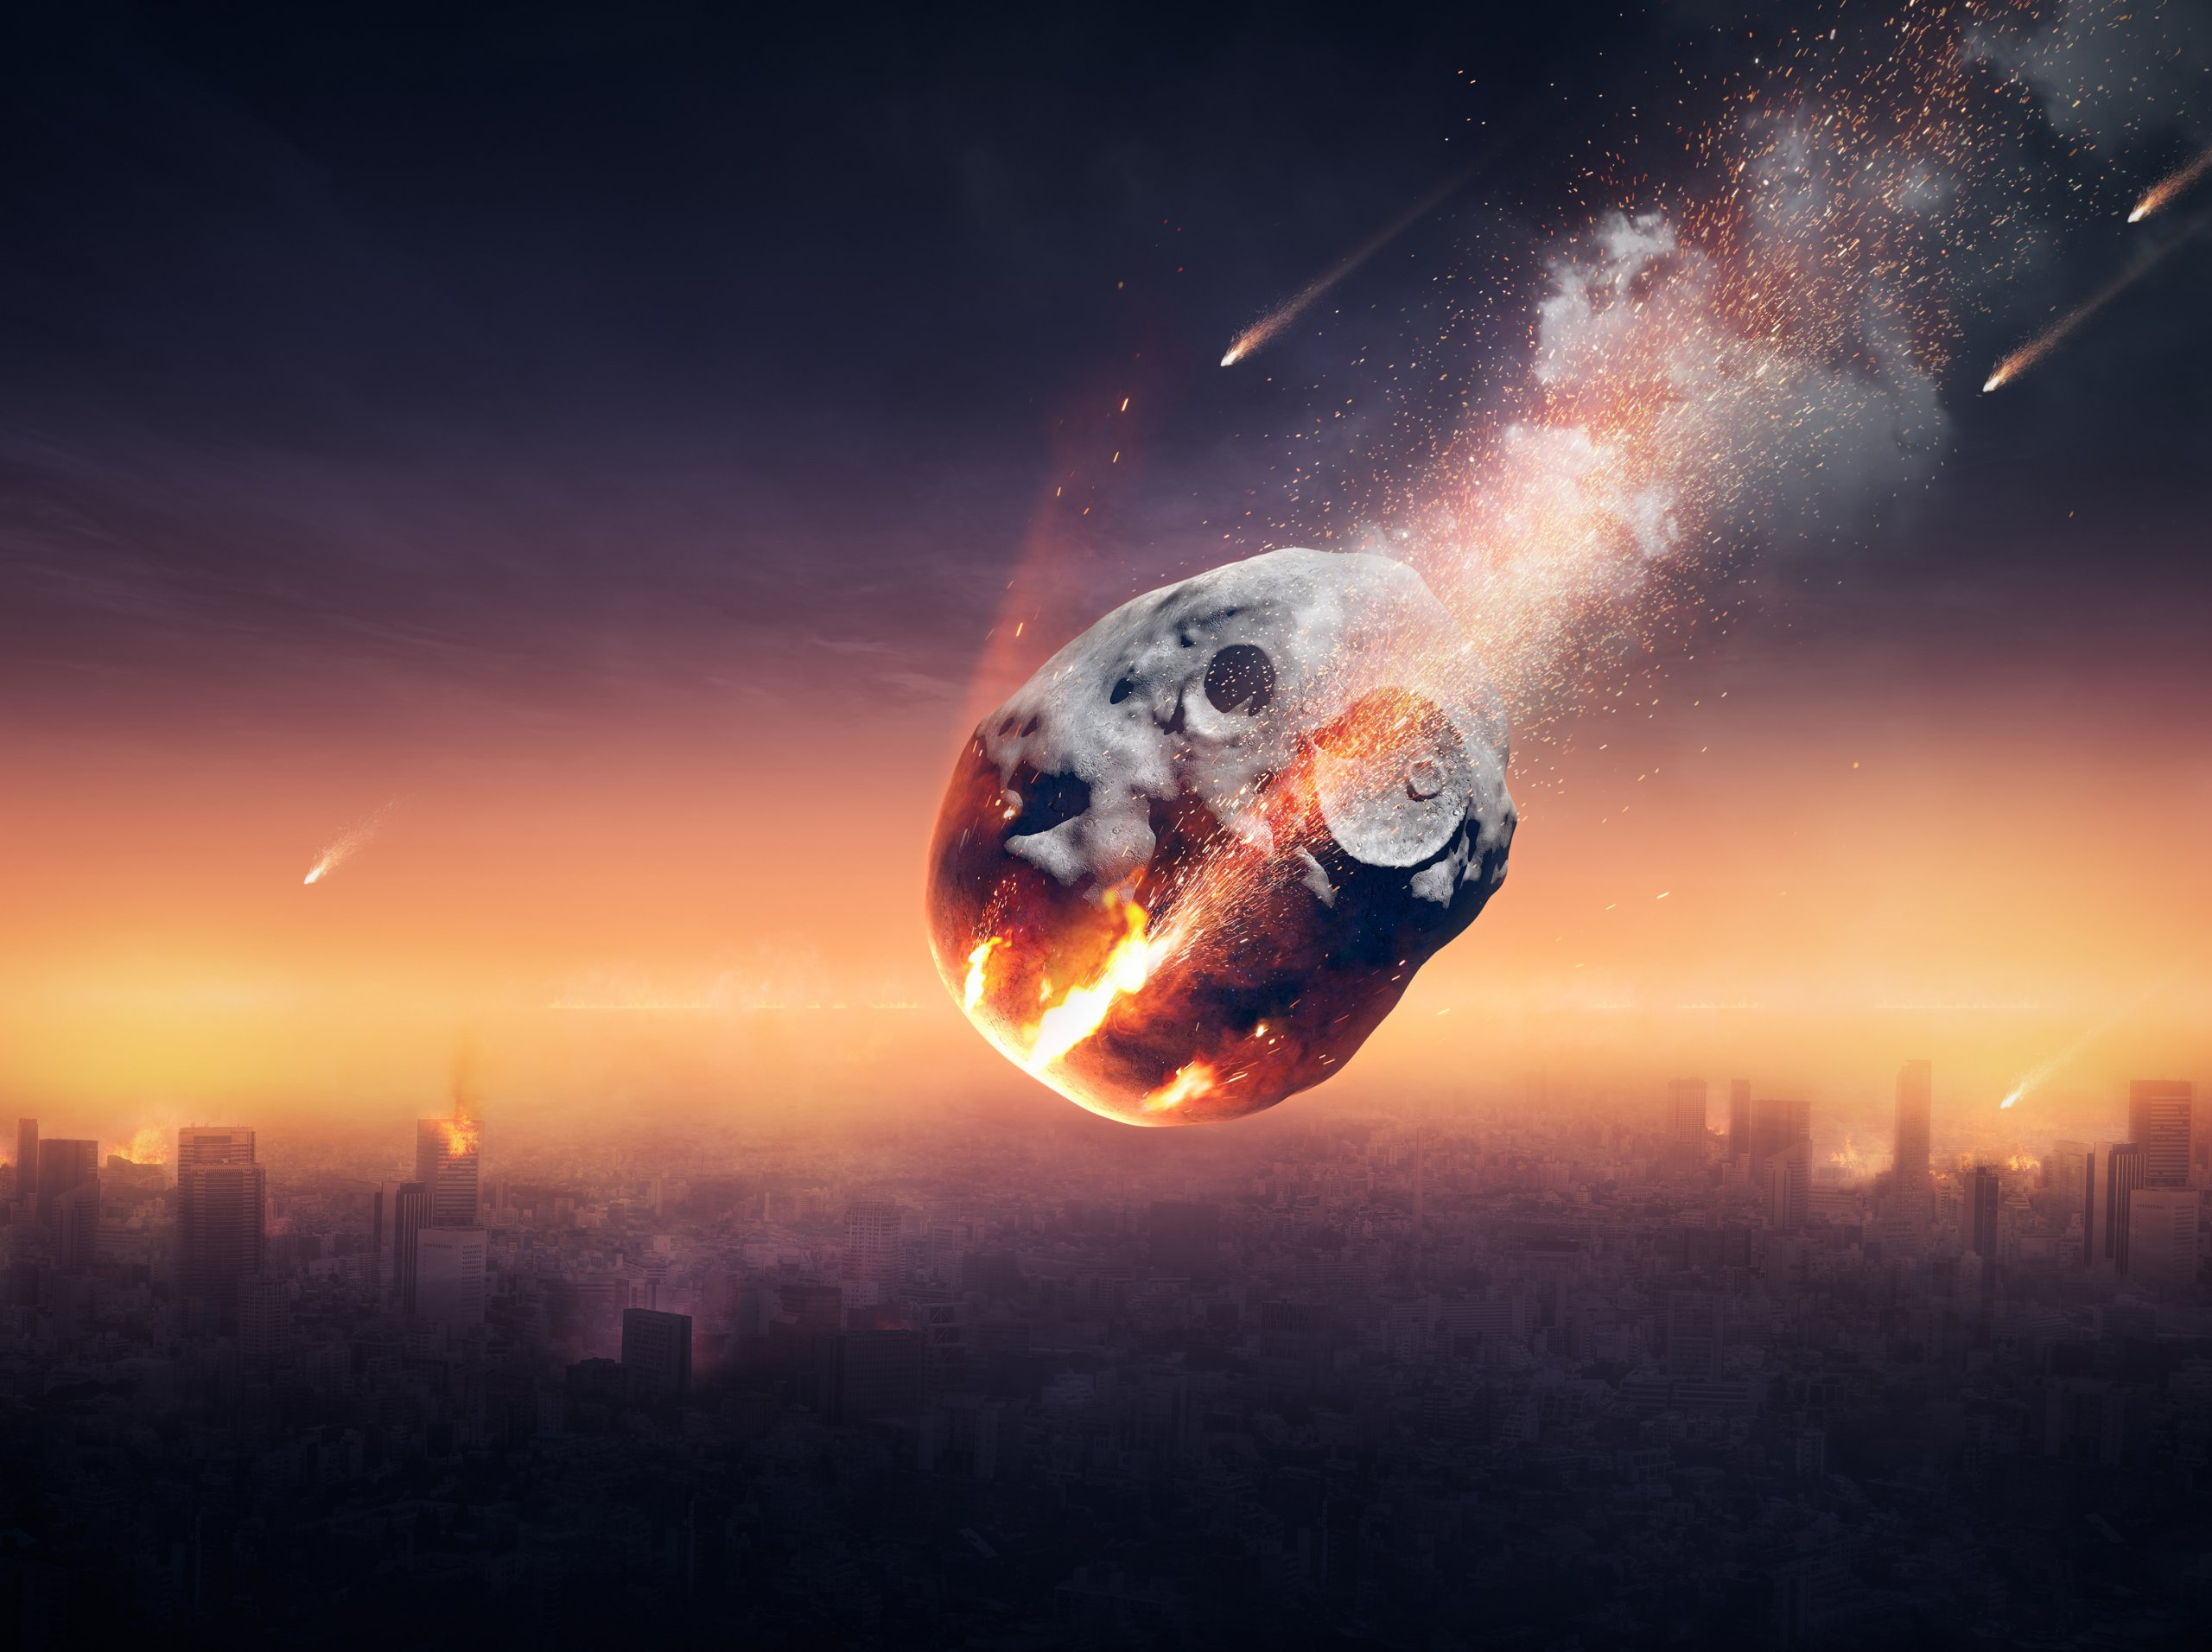 City on earth destroyed by meteor